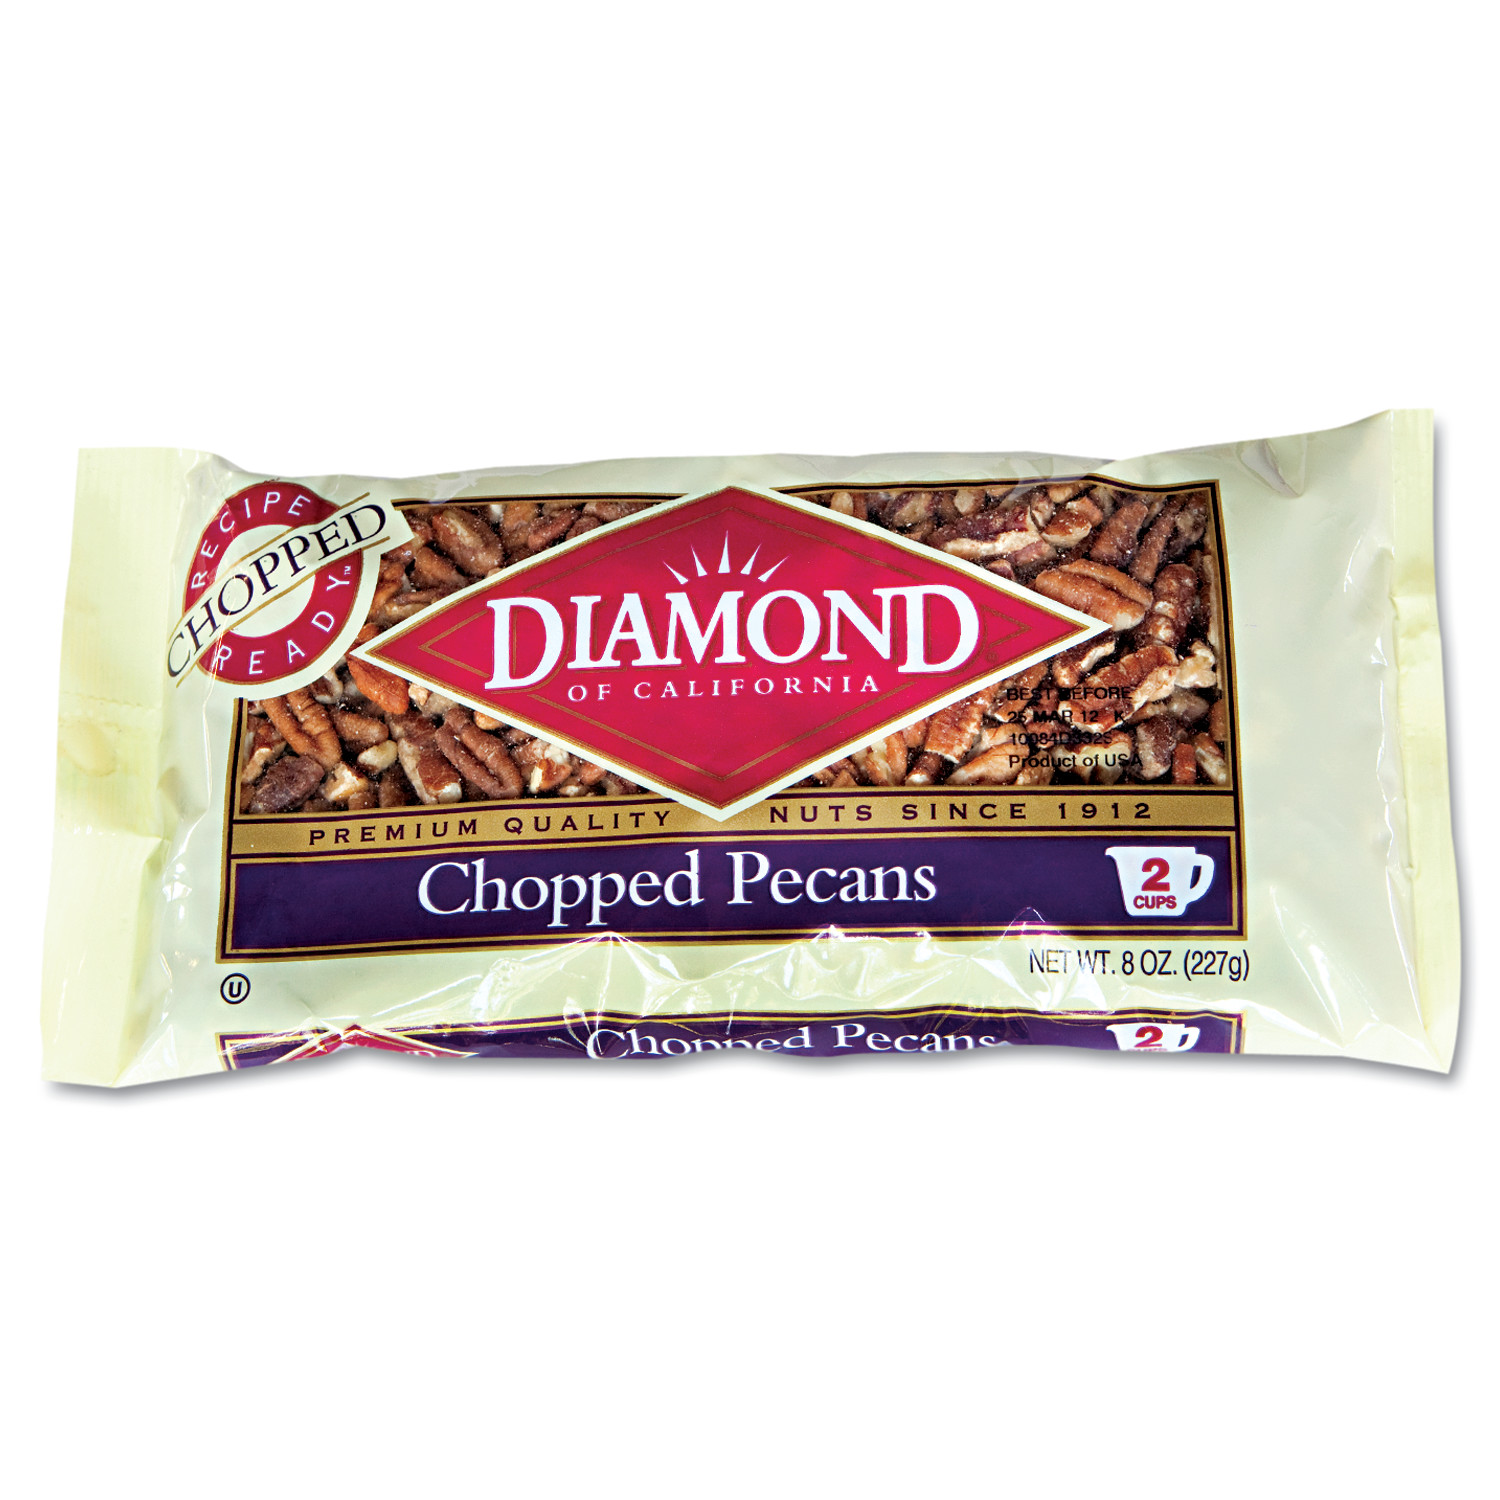 Diamond of California Chopped Pecans, 8oz Bag by Diamond Foods